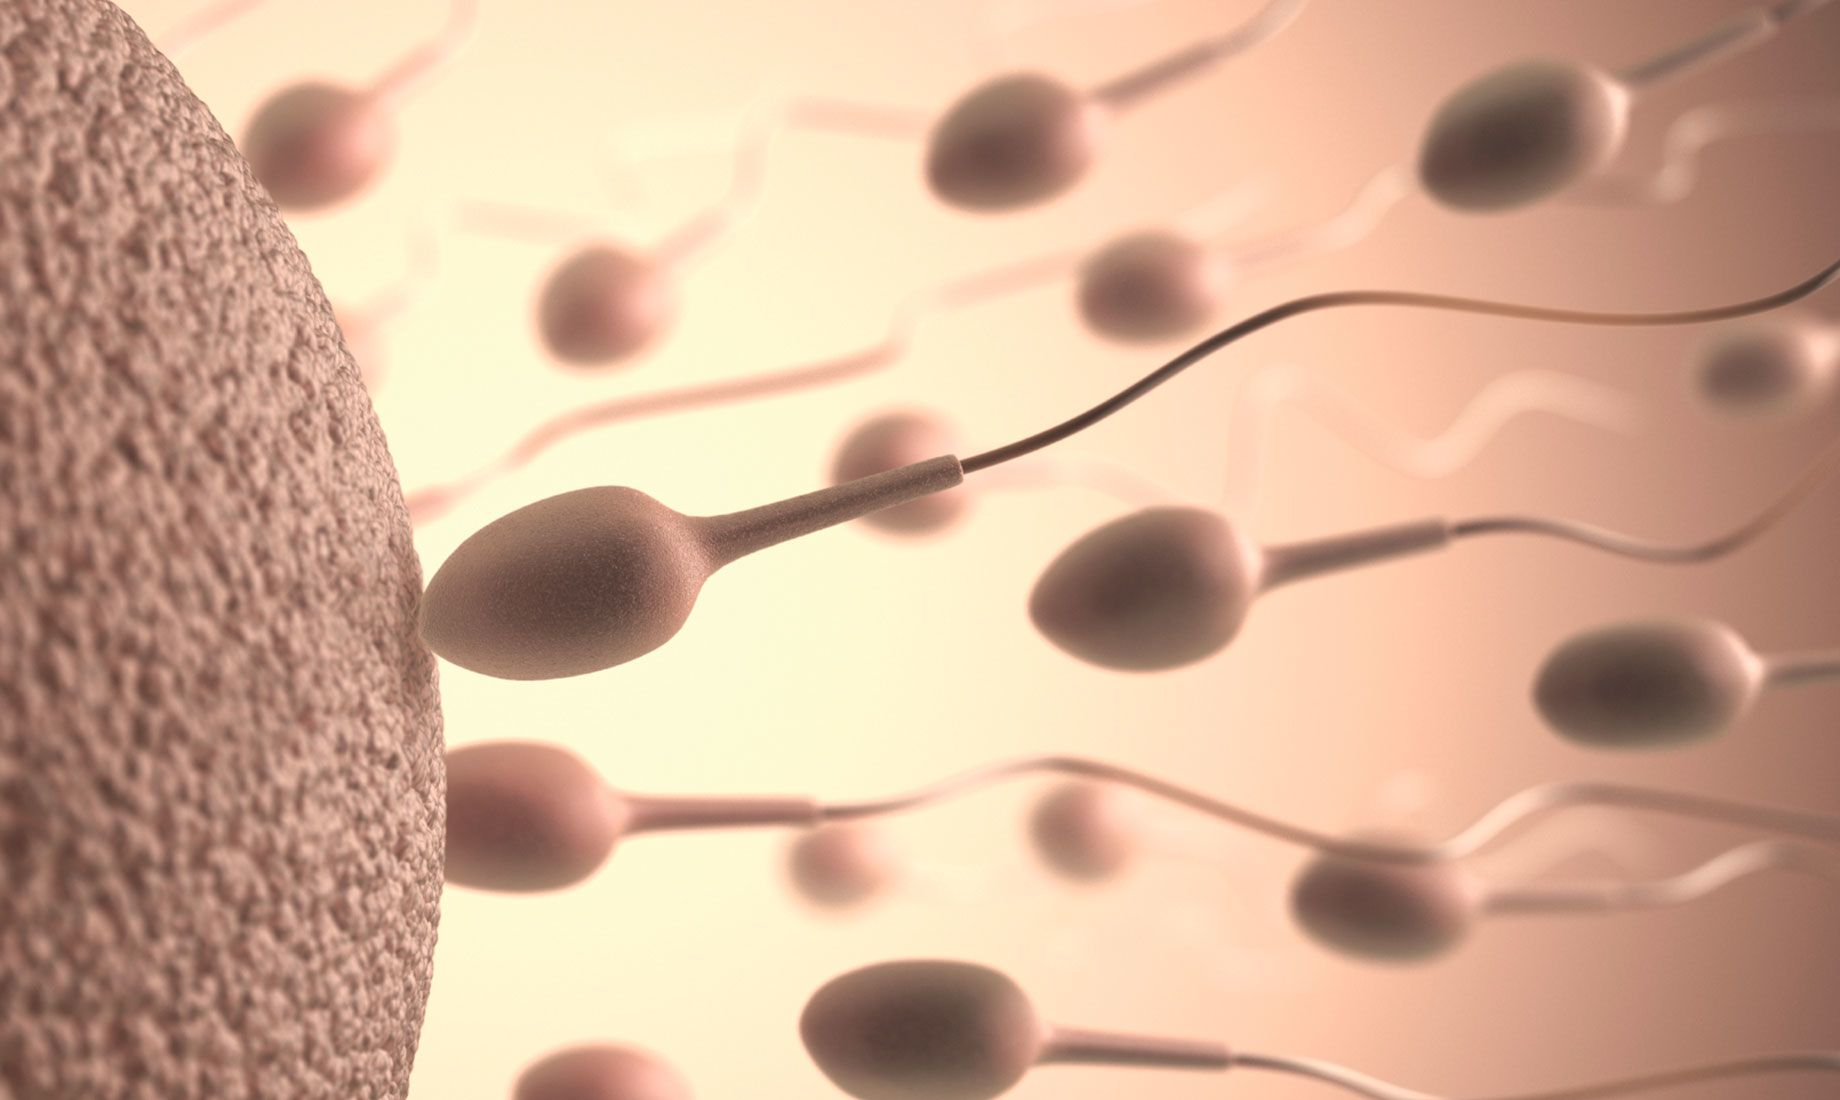 Illustration of sperm and egg